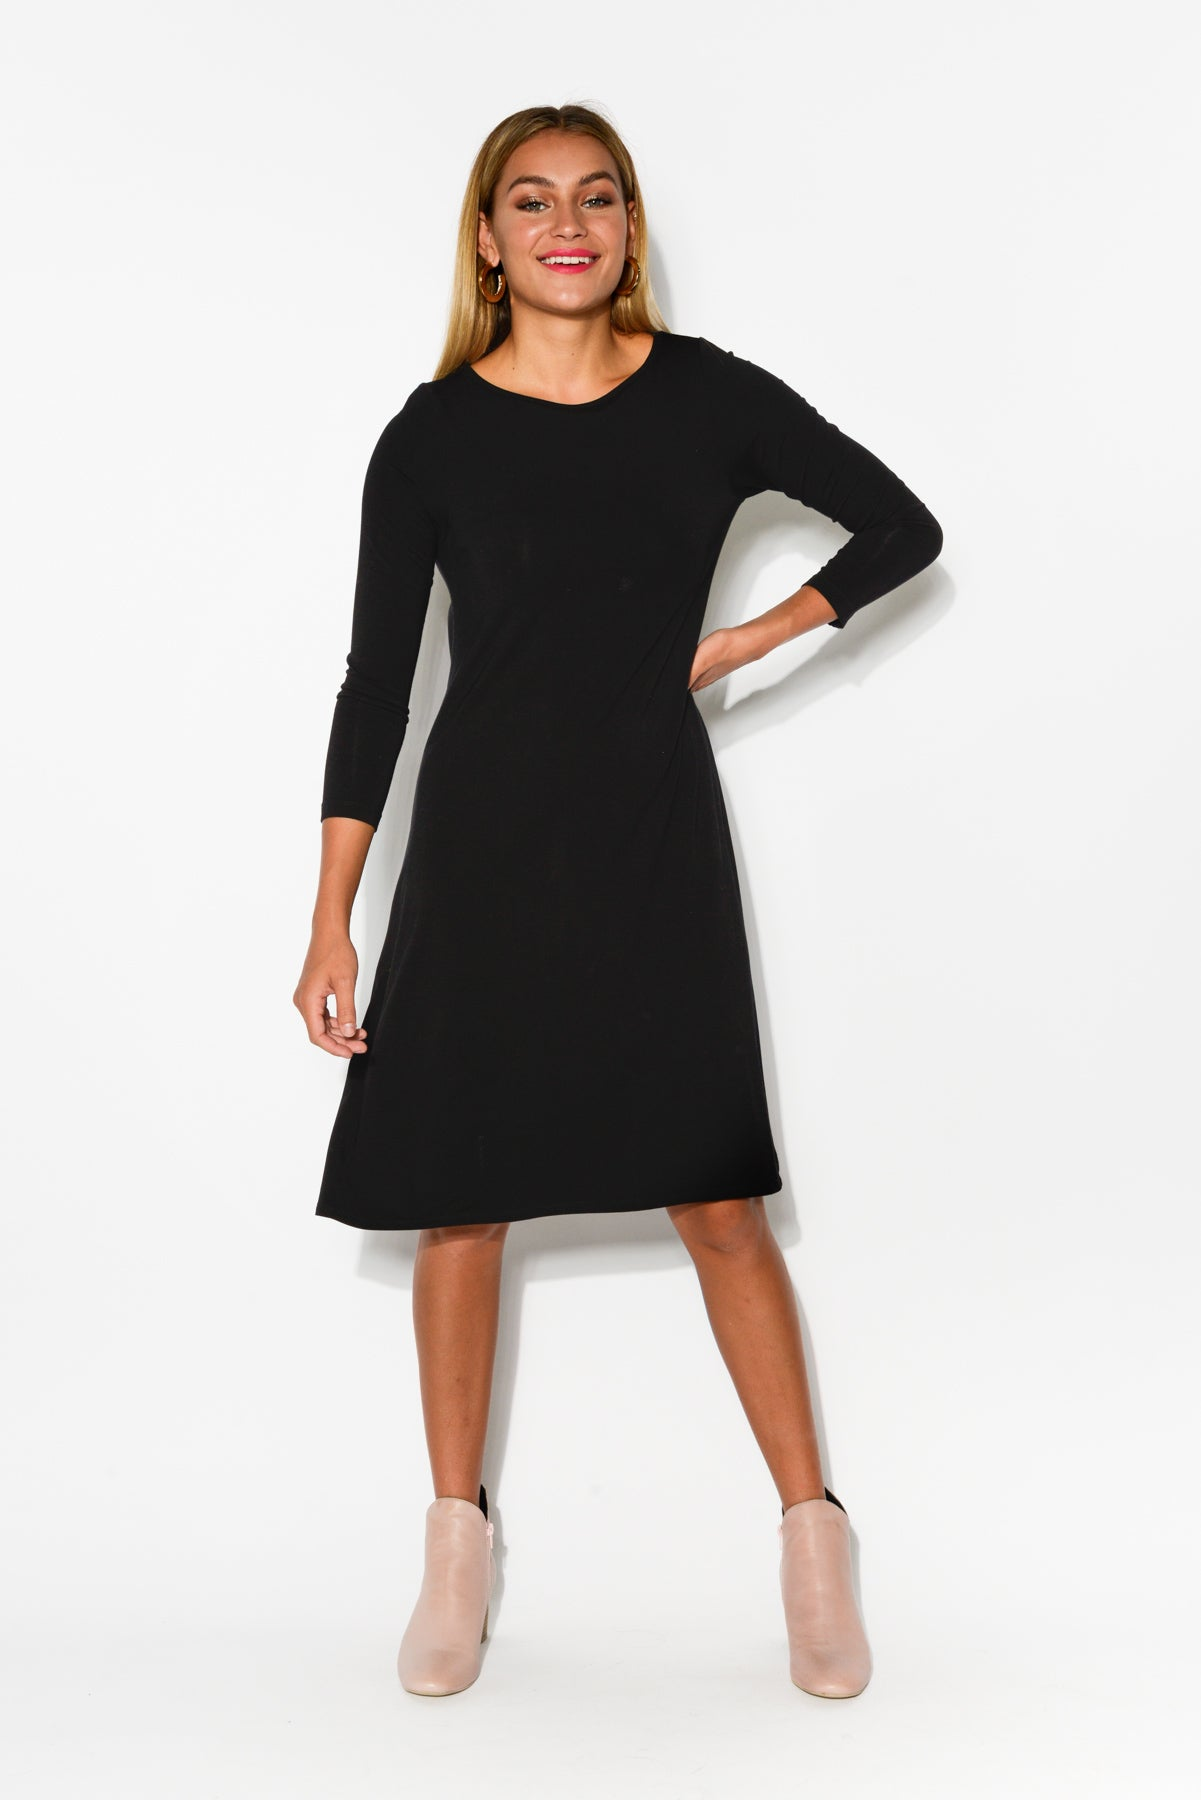 Cher Black Bamboo Sleeved Dress - Blue Bungalow